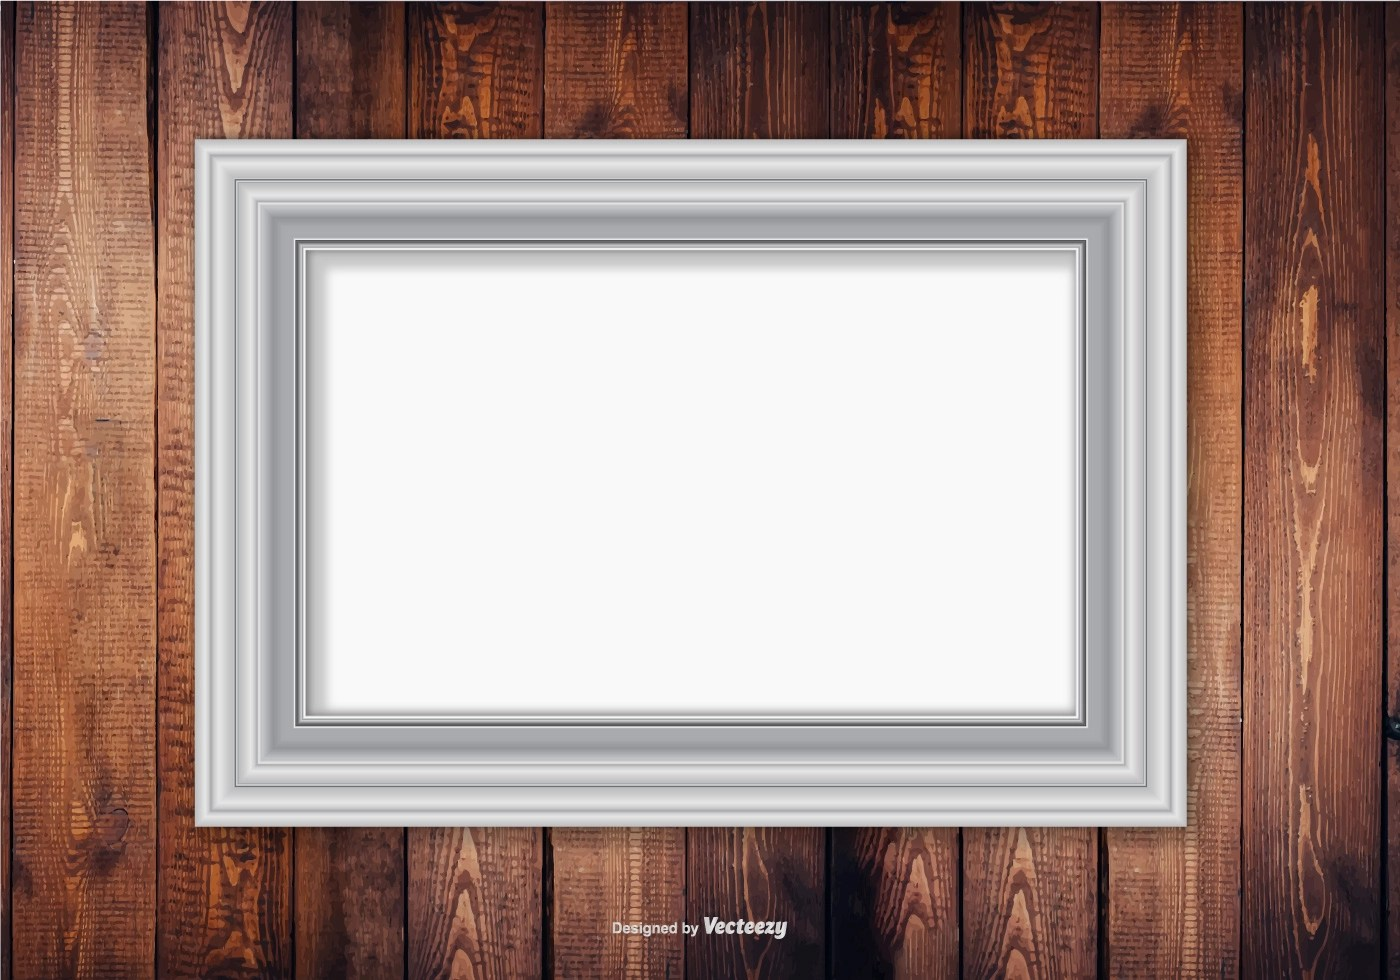 Wall Mirror No Frame Silver Frame On Wood Wall Background Download Free